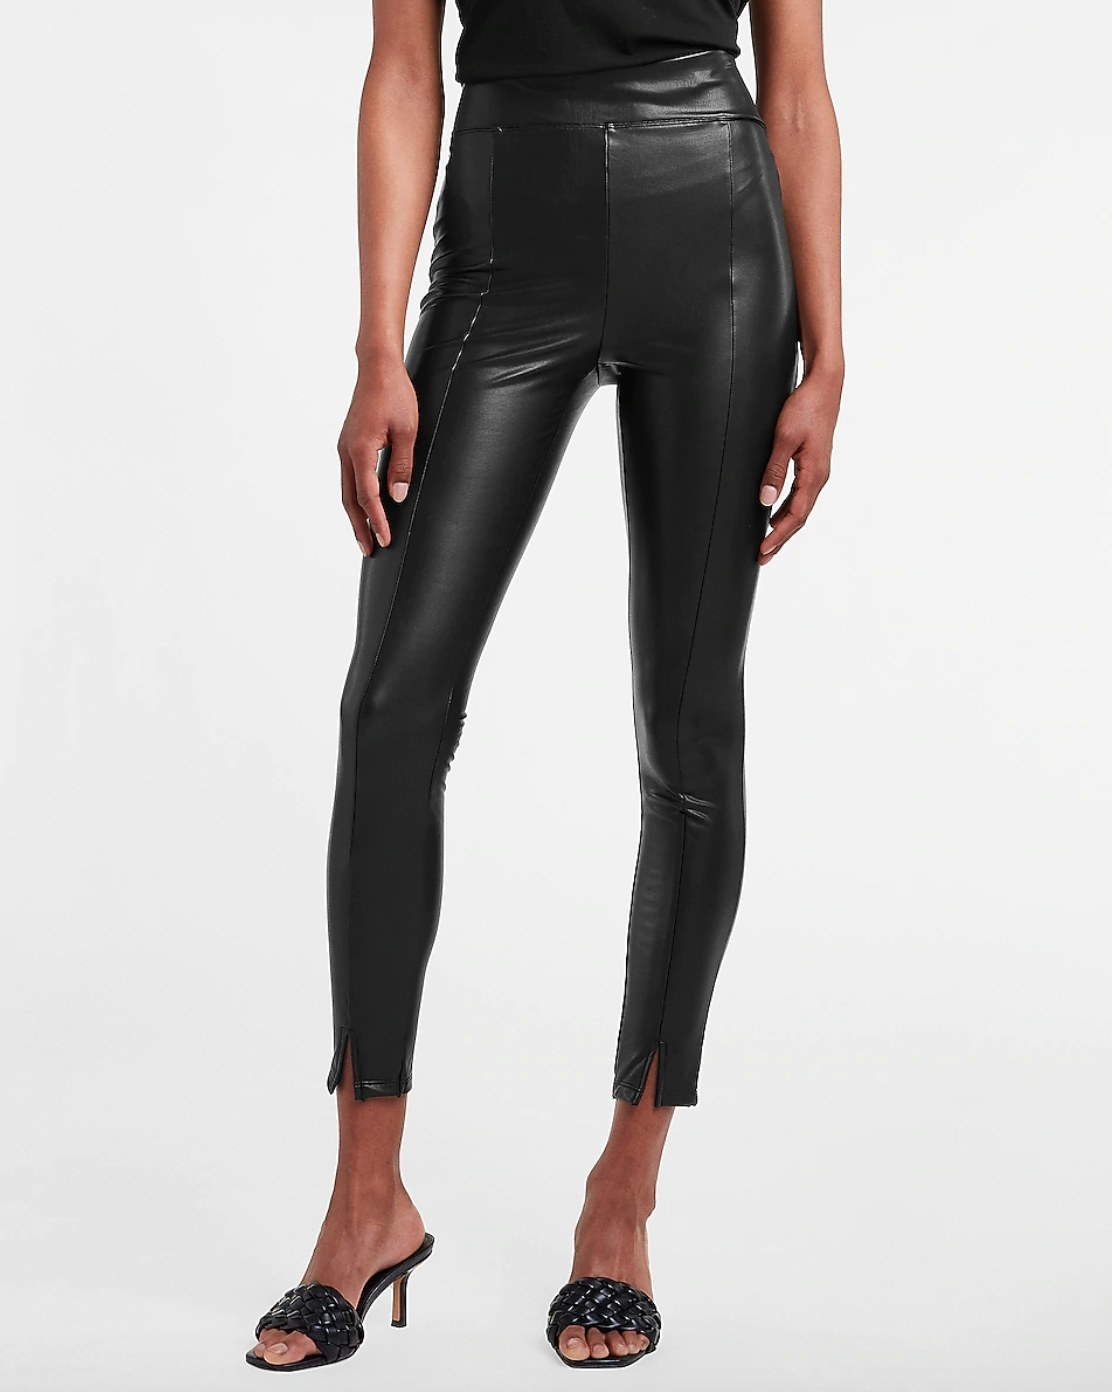 model wearing the pair of super high waisted vegan leather pants in black